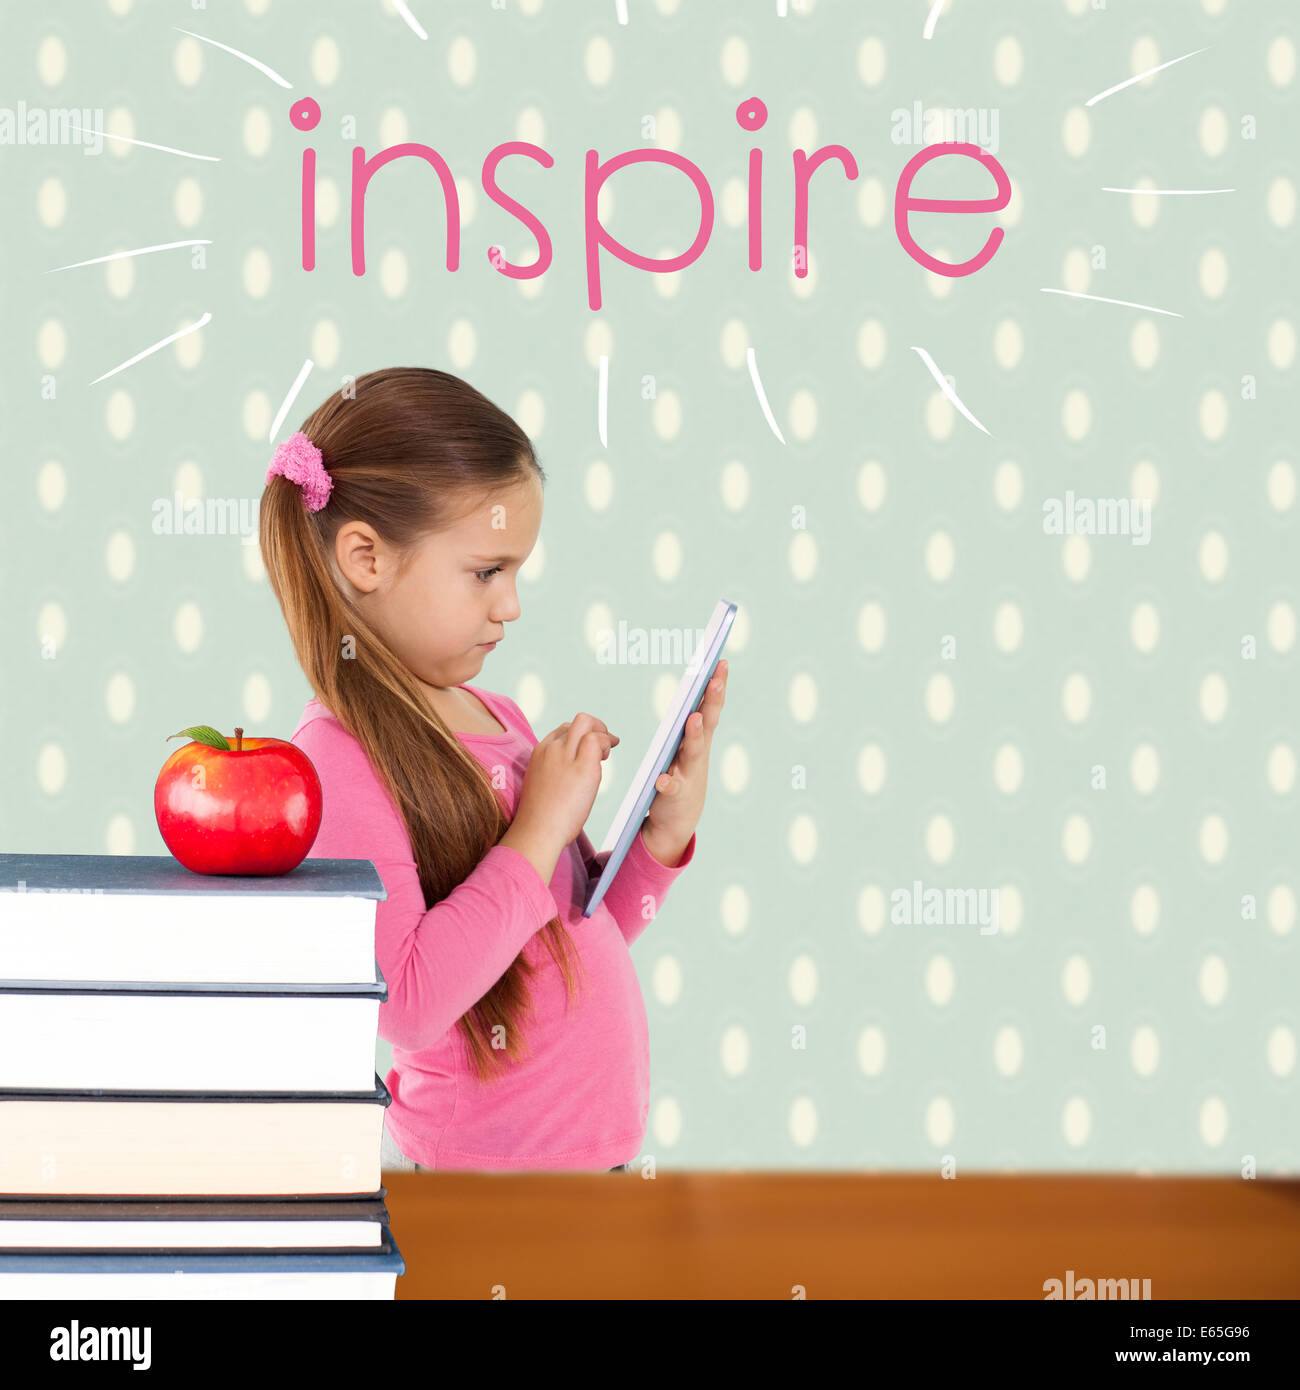 Inspire against red apple on pile of books - Stock Image